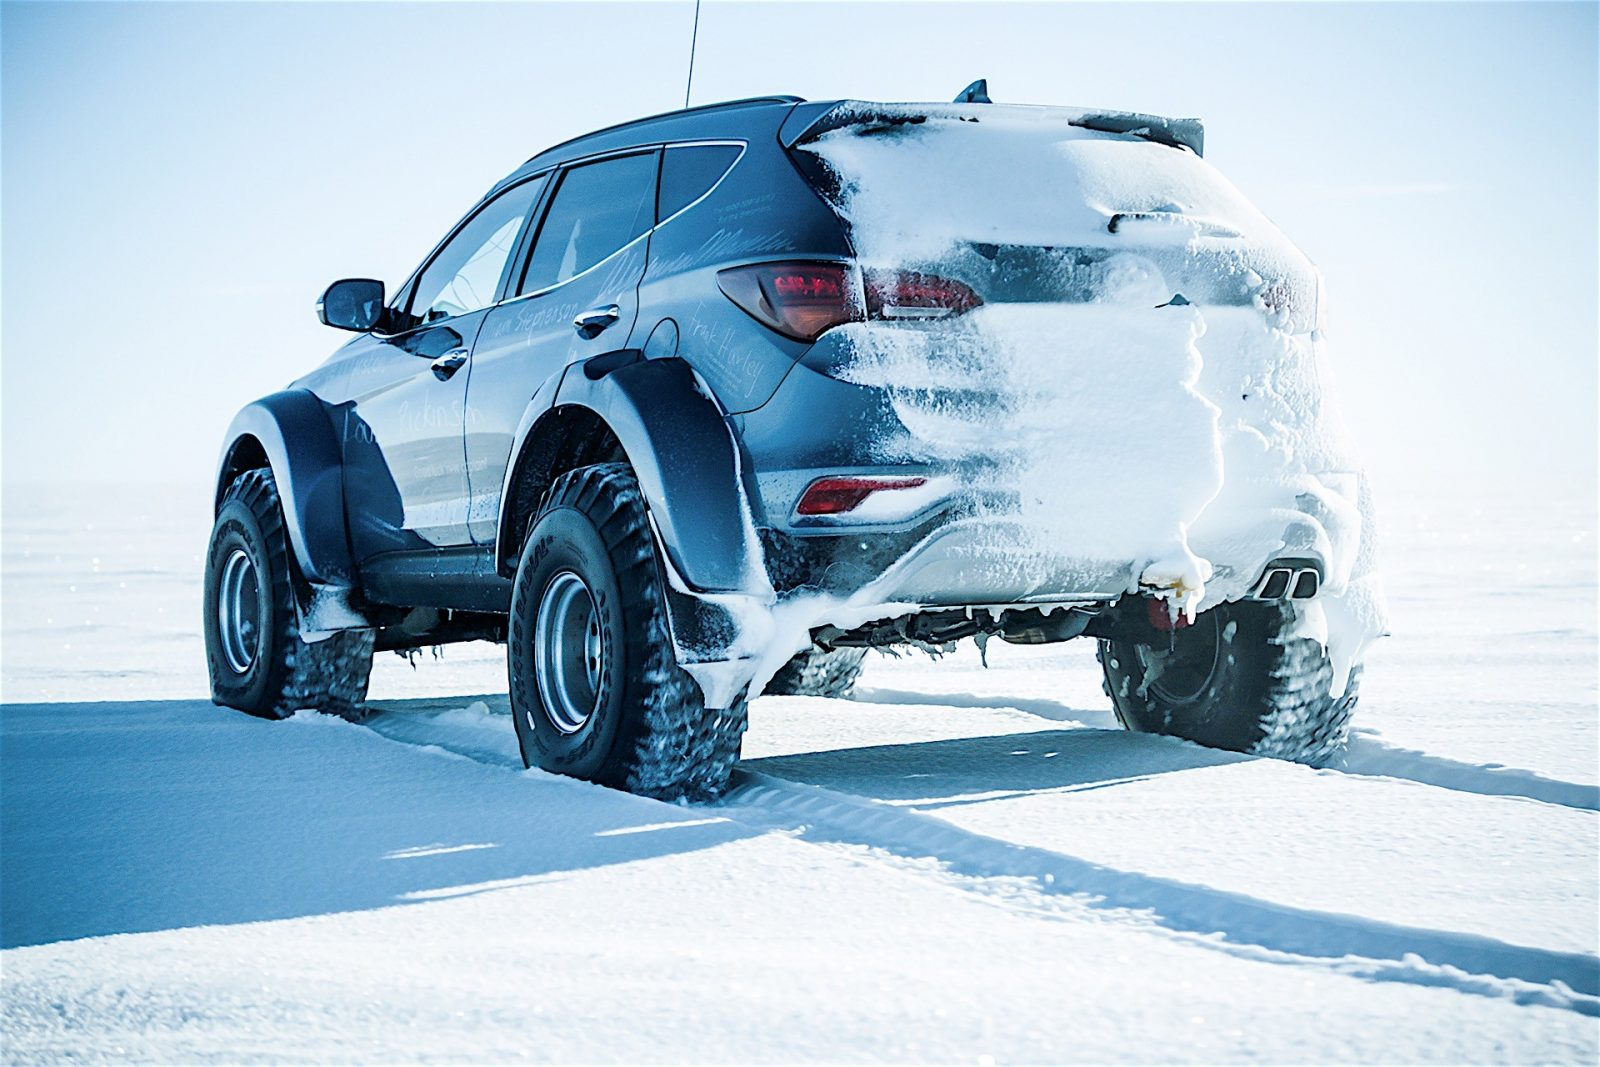 hyundai-santa-fe-conquers-the-antarctic-driven-by-great-grandson-of-sir-ernest-s_11